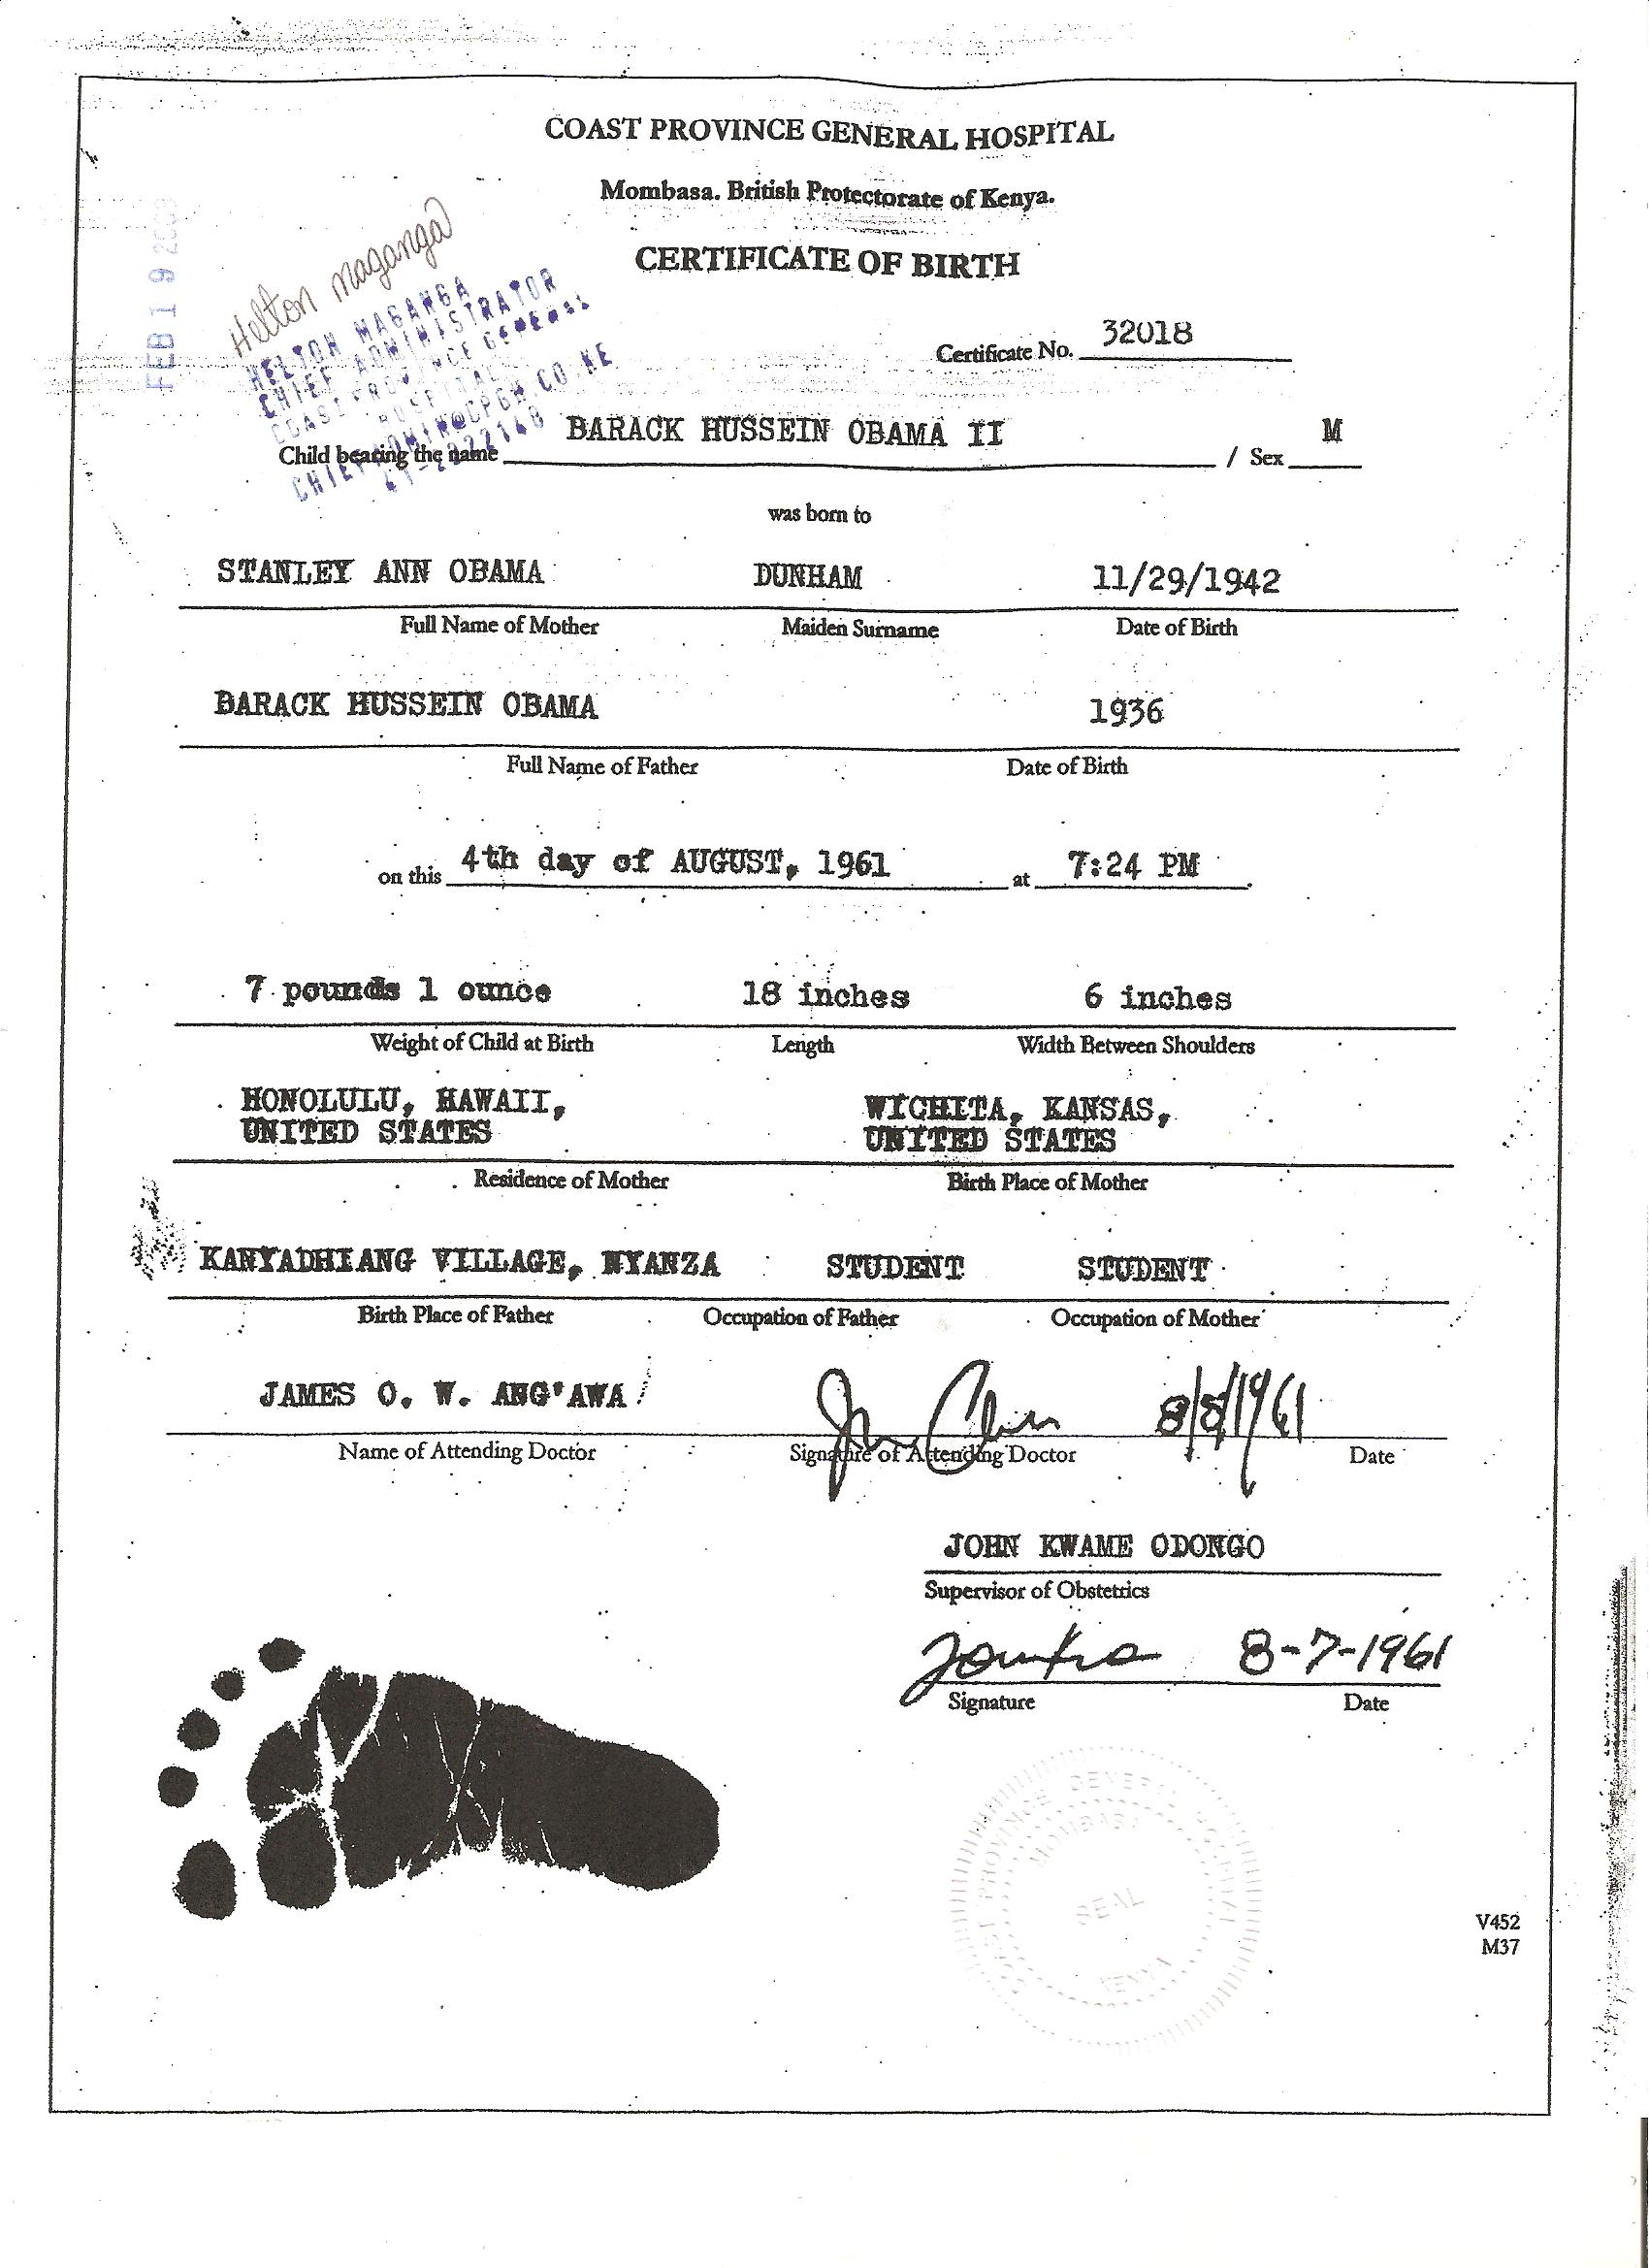 Obamas Kenyan Birth Certificate A Fraud Getting At The Truth